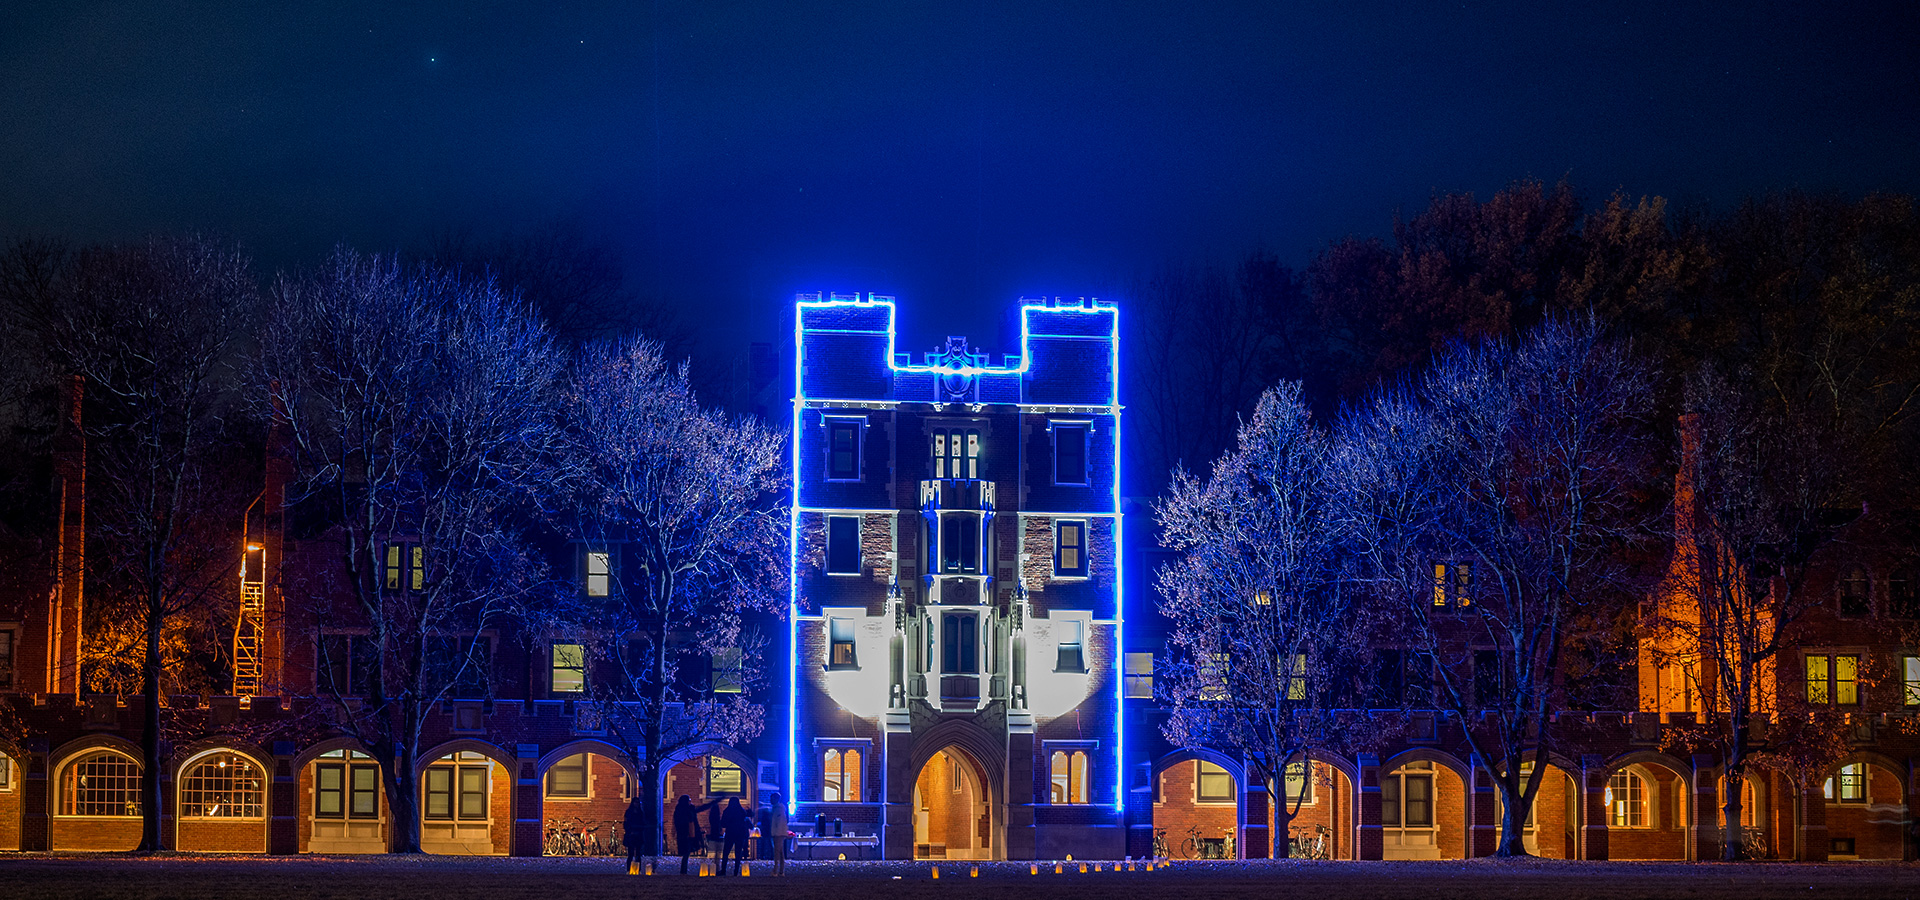 Gates Tower on the campus of Grinnell College. The outline of the tower is lined with Christmas Lights which allows the shape of the building to cut through a light haze.